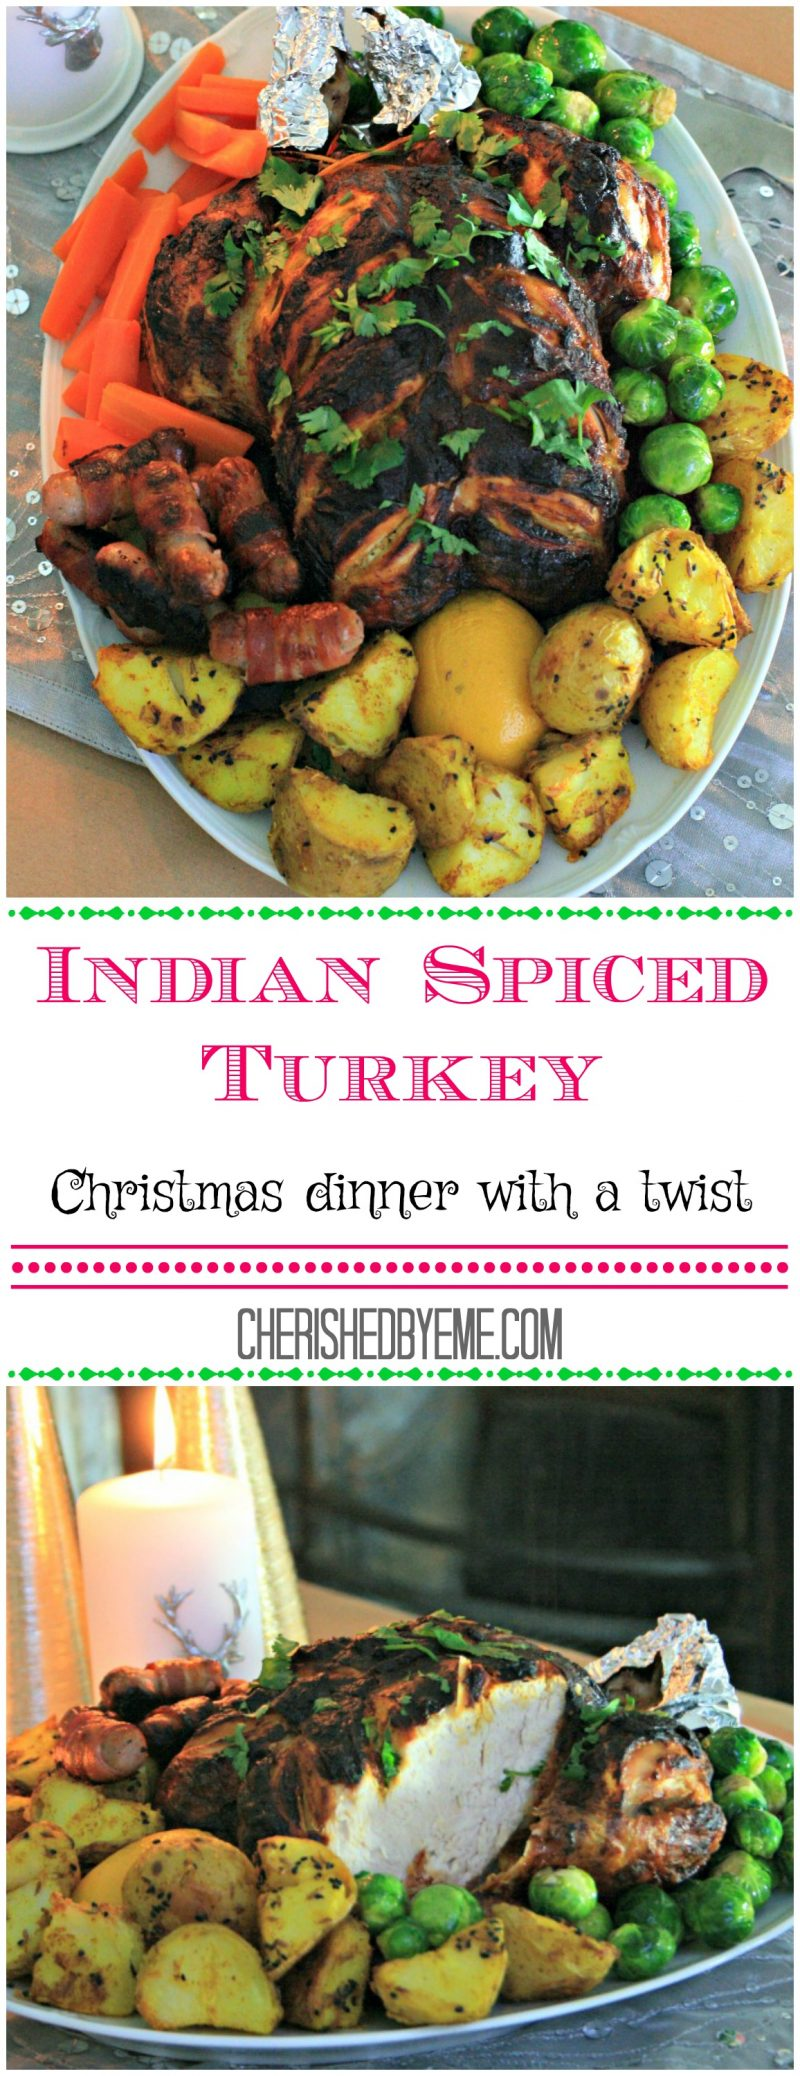 Indian Spiced Turkey